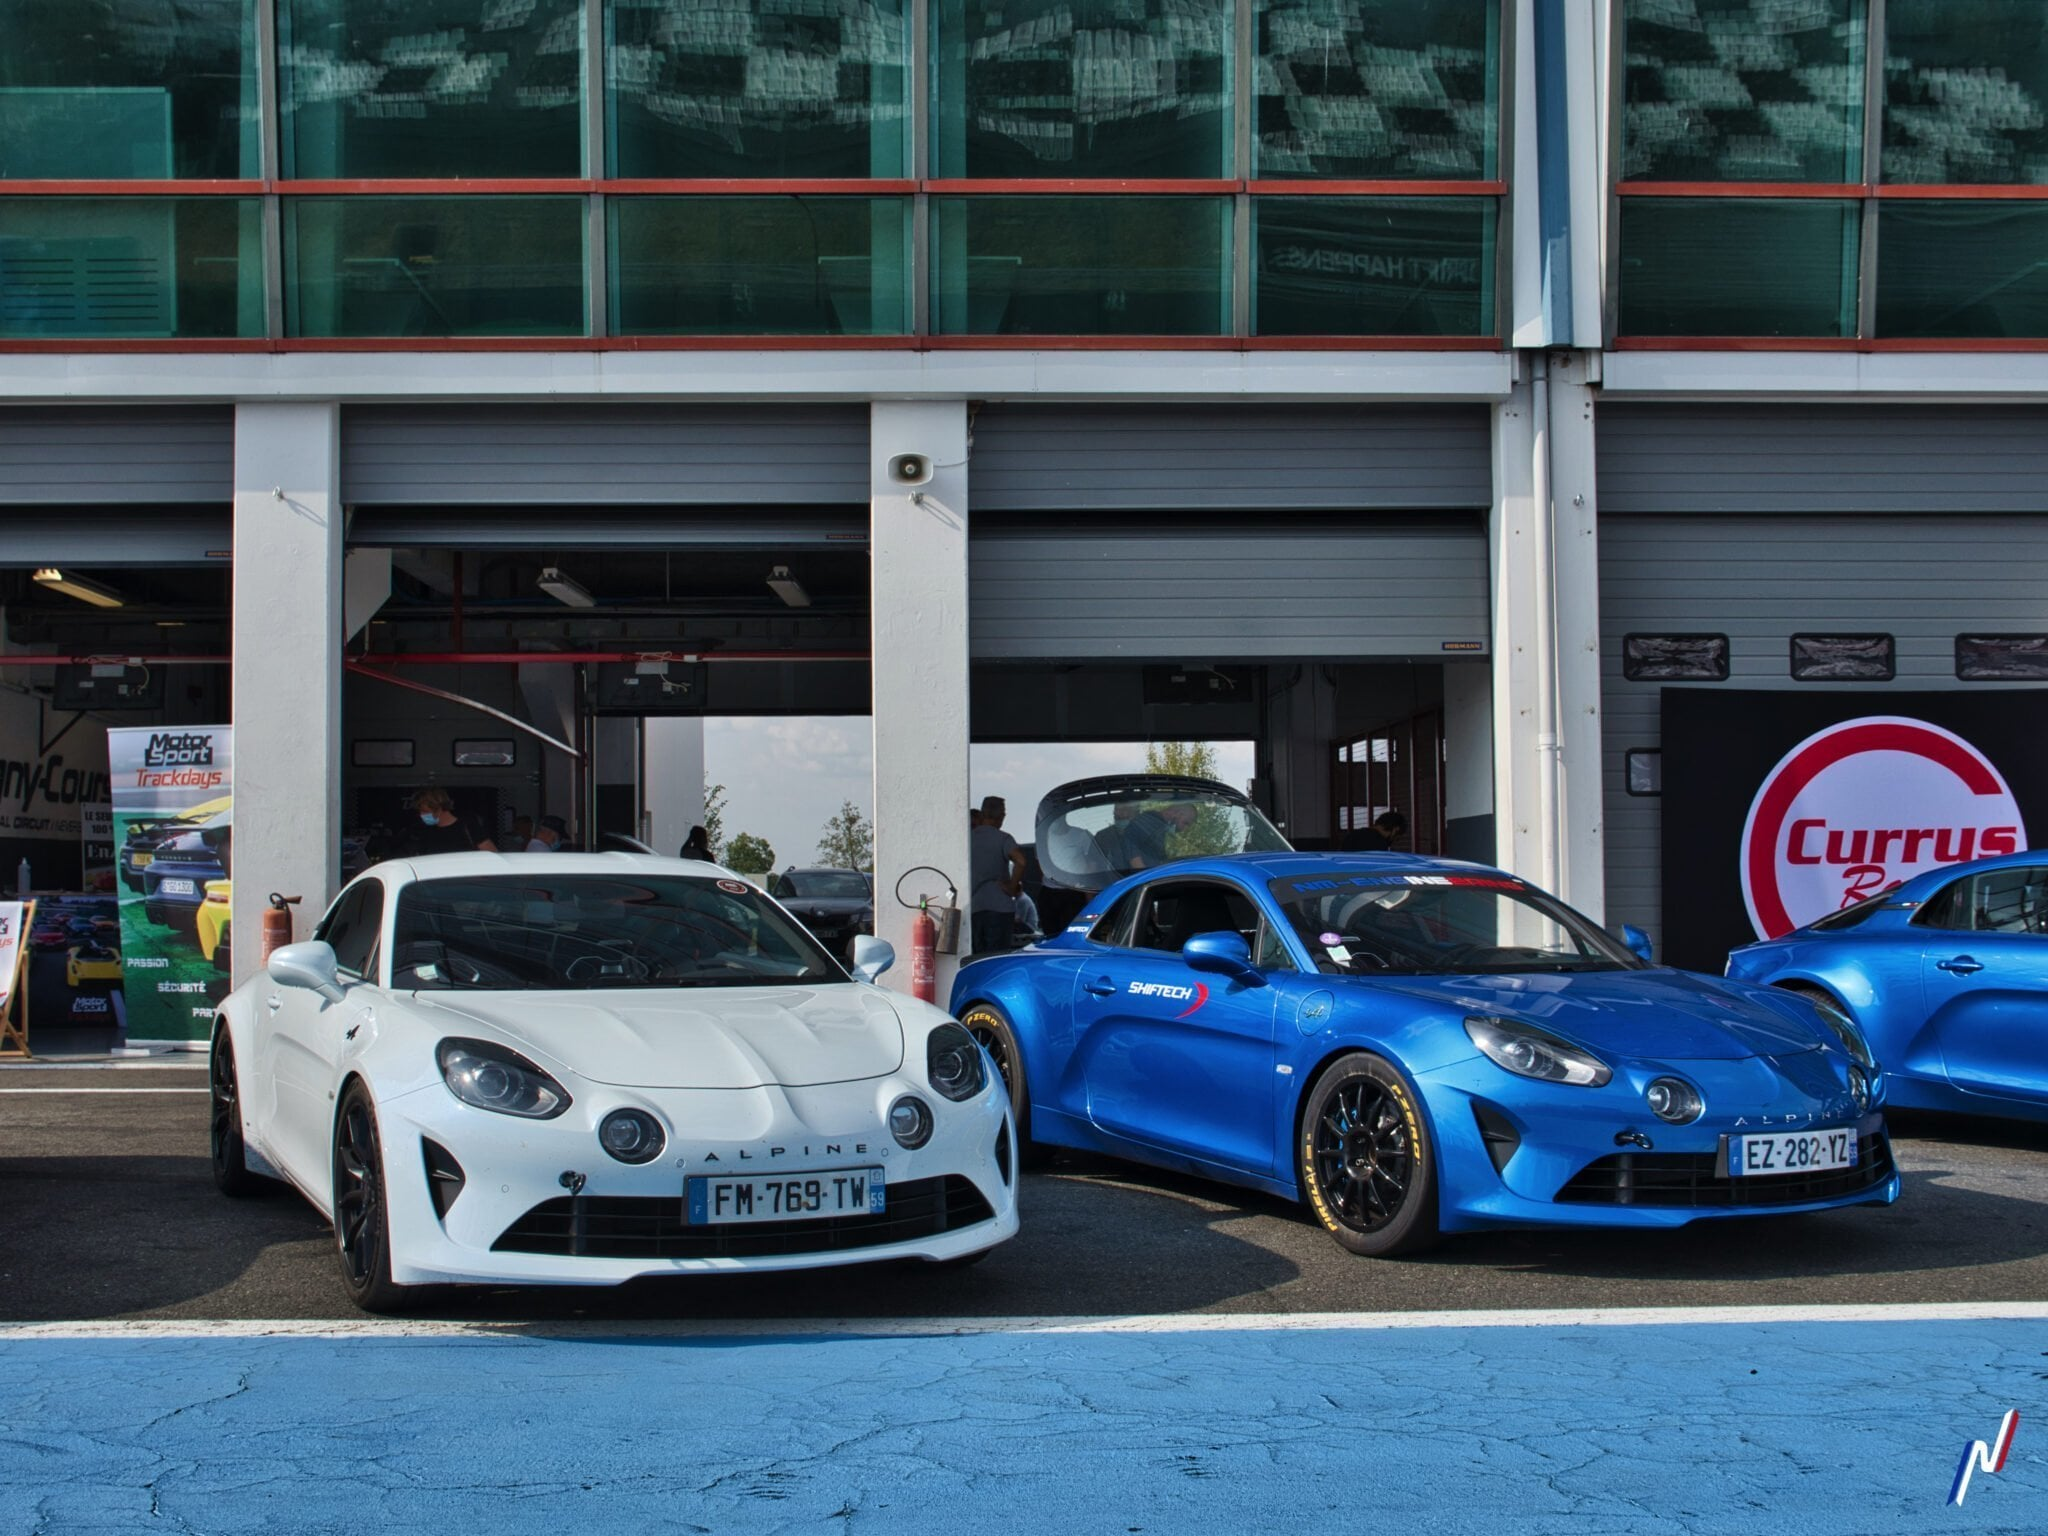 Motorsport Mag Track Day Magny Cours Alpine A110  P1110030 Alpine Planet | Track Day Motorsport 2020 : Magny-Cours, des Alpine et du fun !